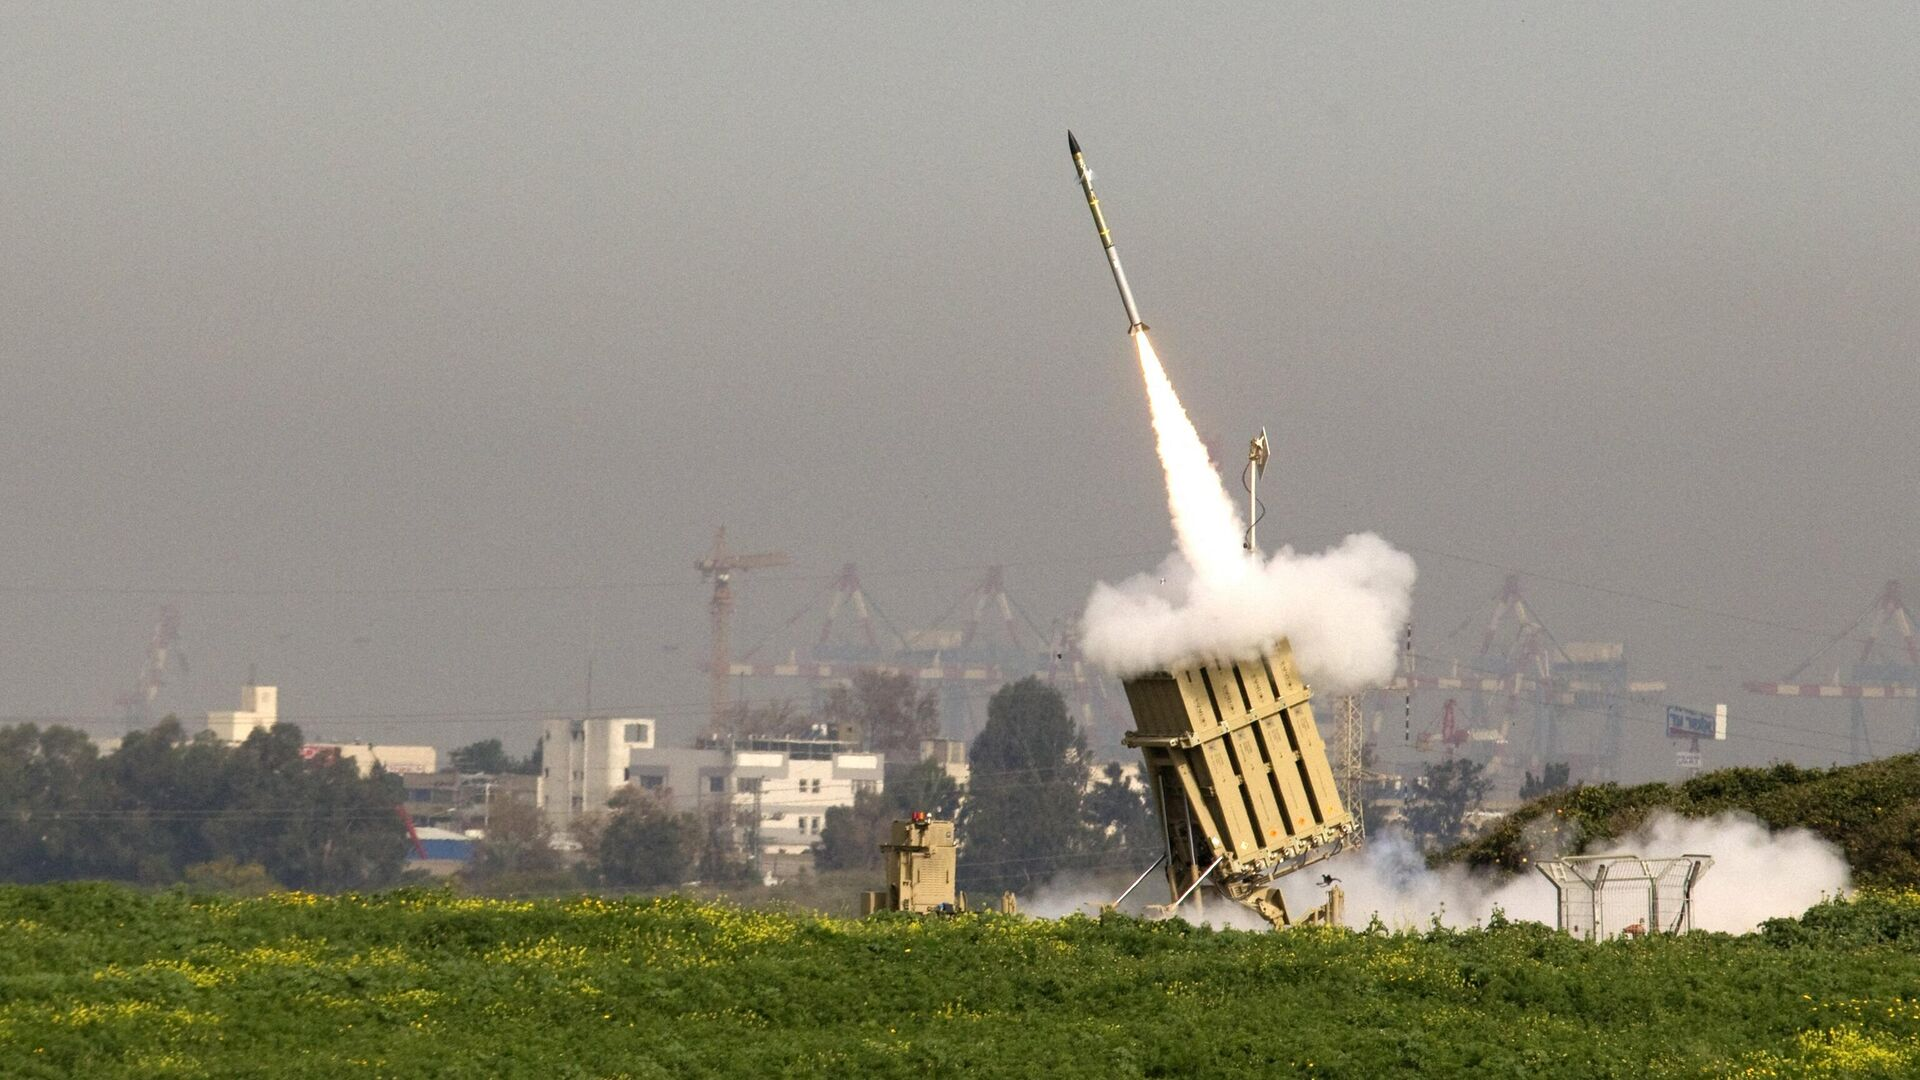 An Israeli missile is launched from the Iron Dome missile system in the city of Ashdod in response to a rocket launch from the nearby Palestinian Gaza Strip on March 11, 2012 - Sputnik International, 1920, 15.09.2021